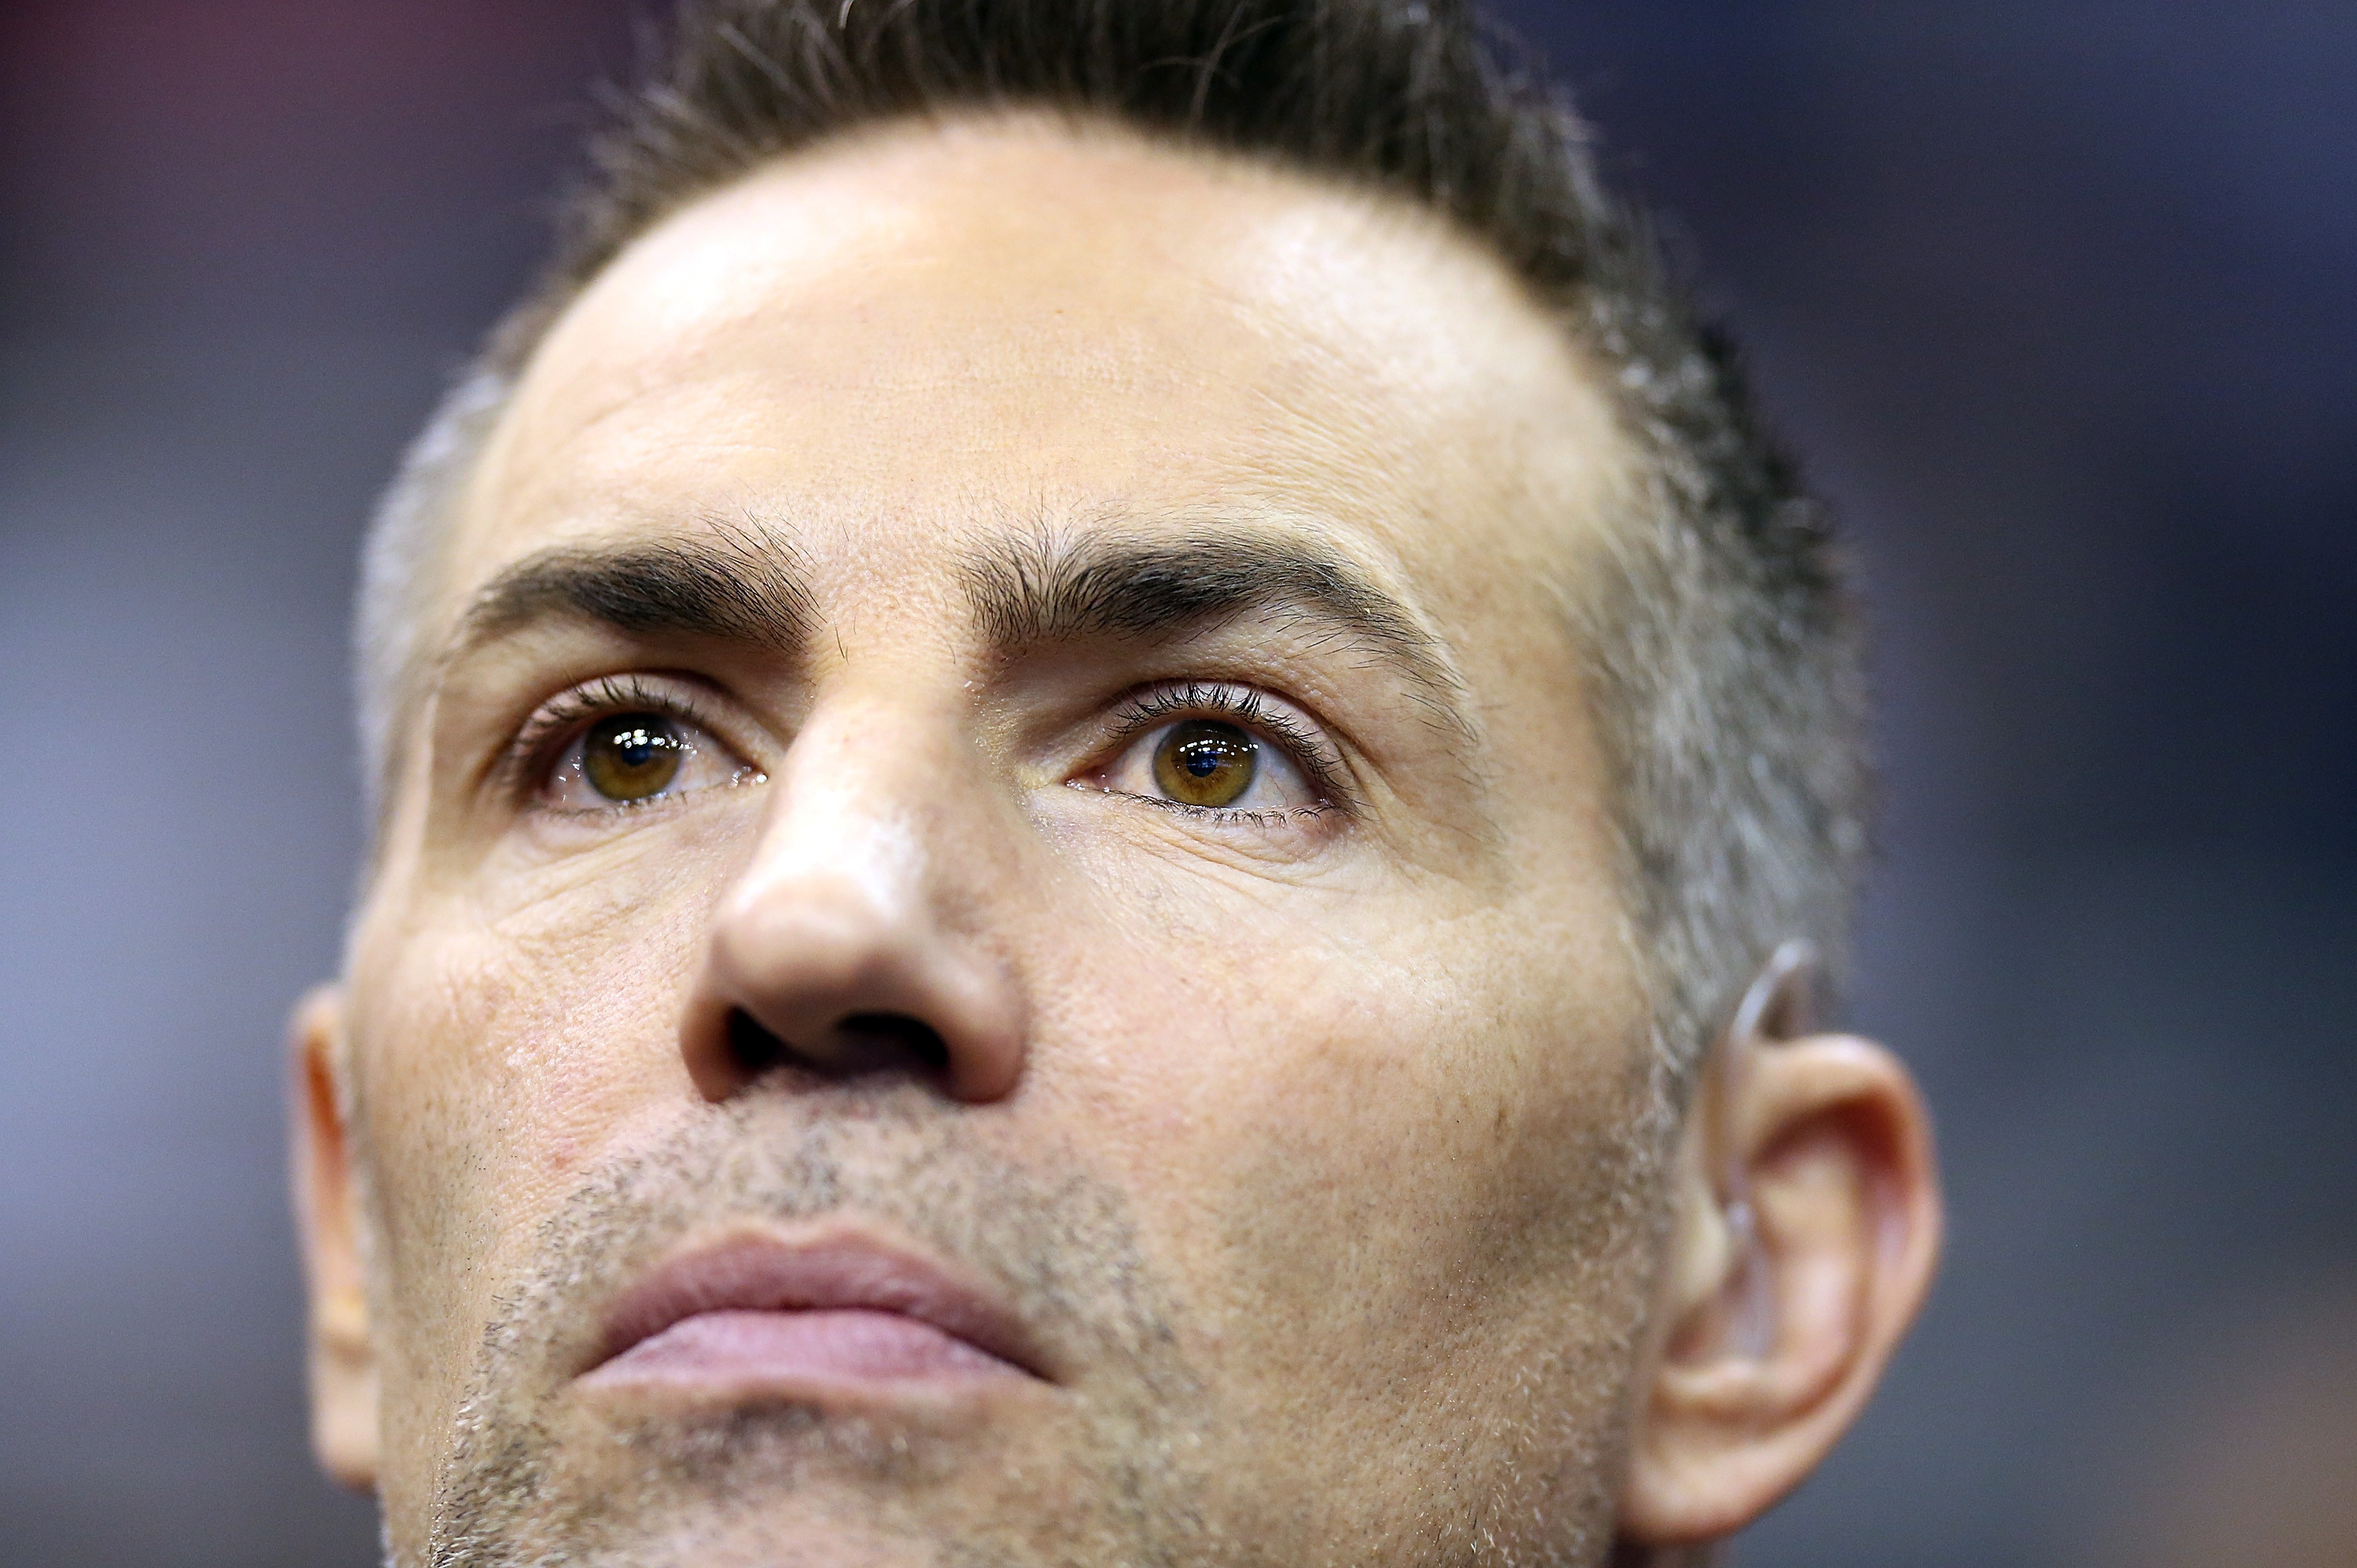 Kurt Warner is one of the greatest success stories in NFL history. Warner spent part of his hefty earnings on a home for his disabled son, Zach.